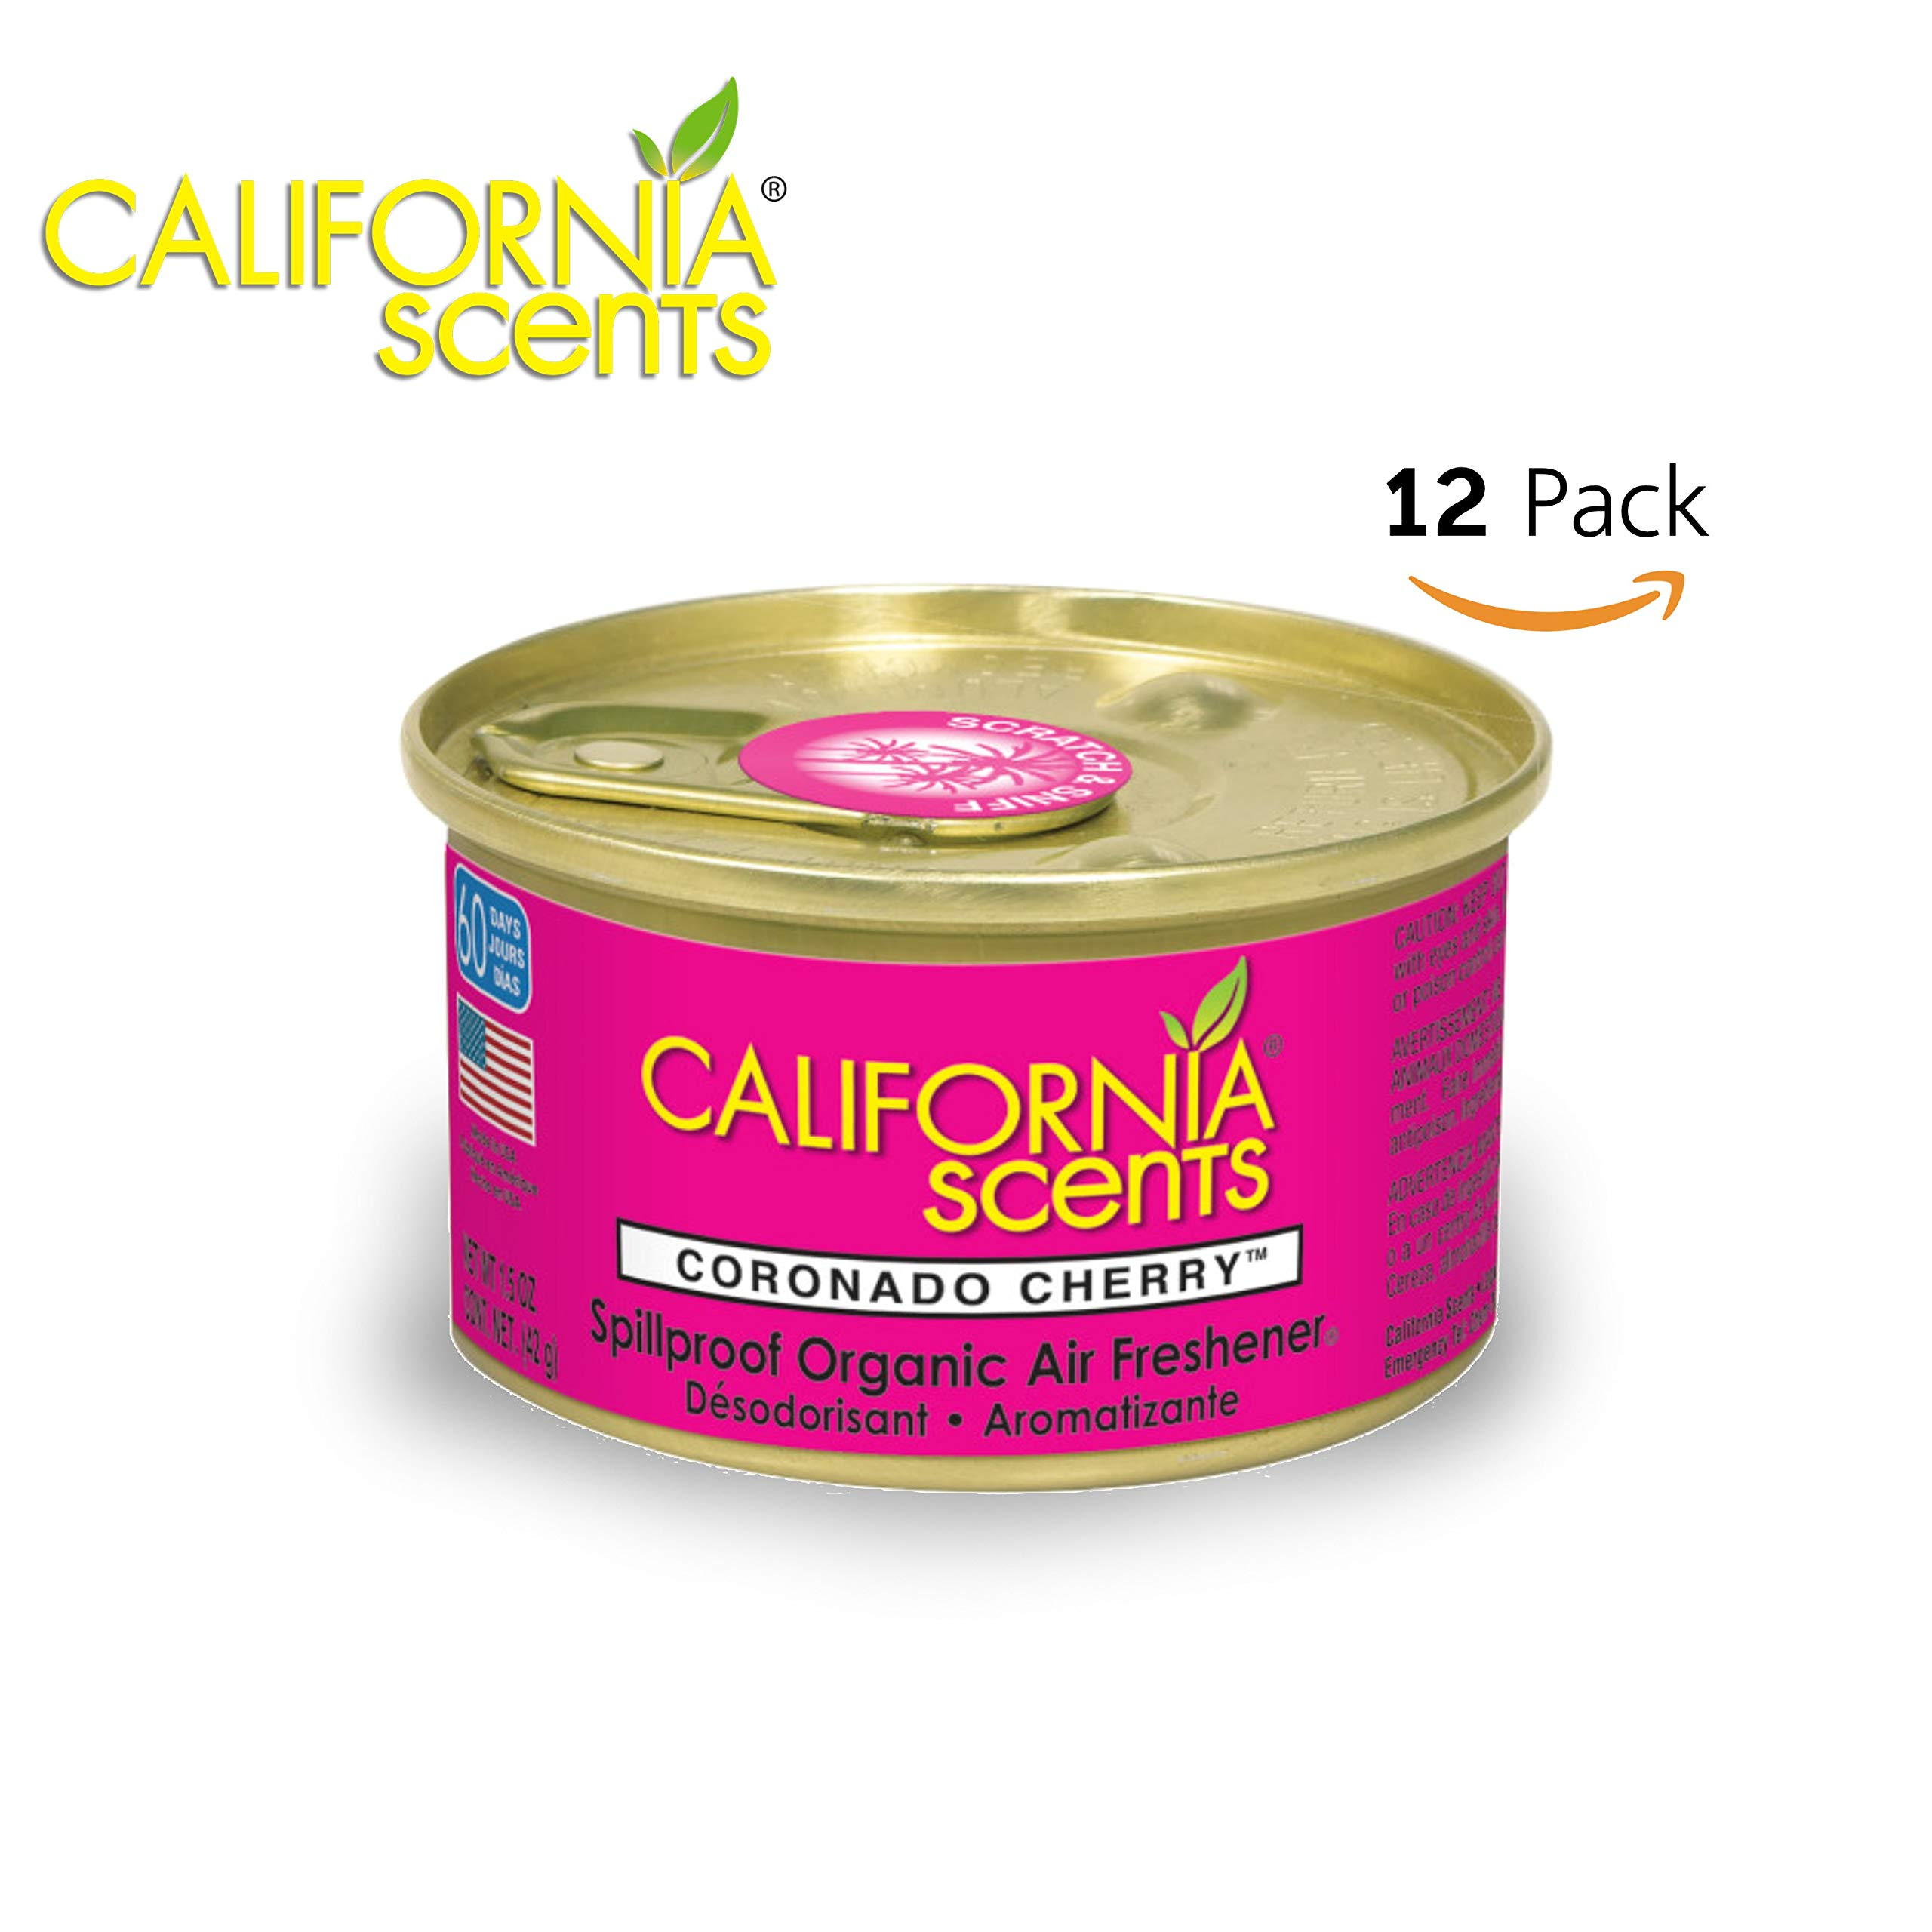 California Scents Spillproof Can Air Freshener Eco-Friendly Odor Neutralizer for Home, Car, Much More, Coronado Cherry, 1.5 oz, 12 Pack by California Scents (Image #1)